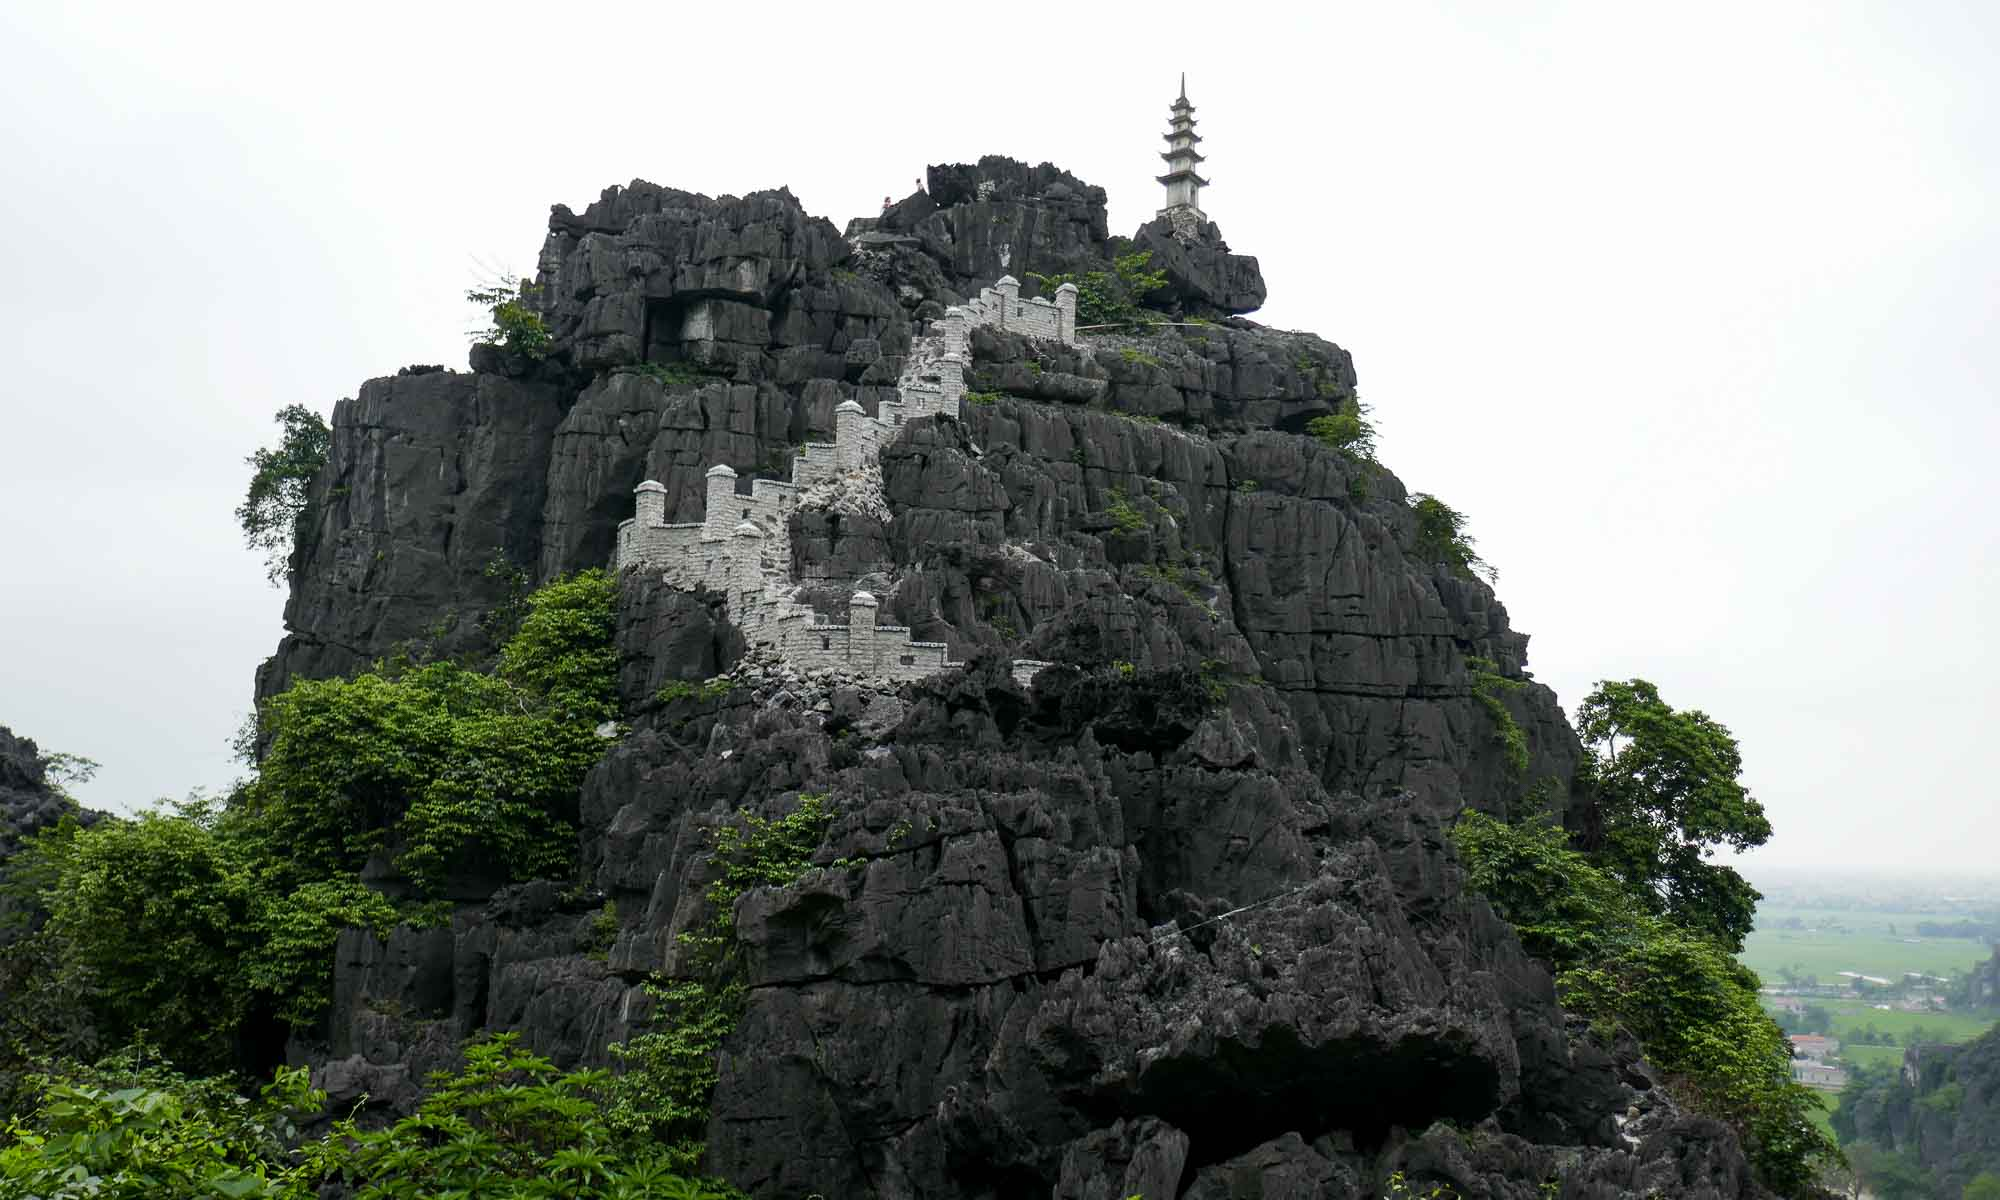 This peak is a lower part of Hang Mua which can also be climbed